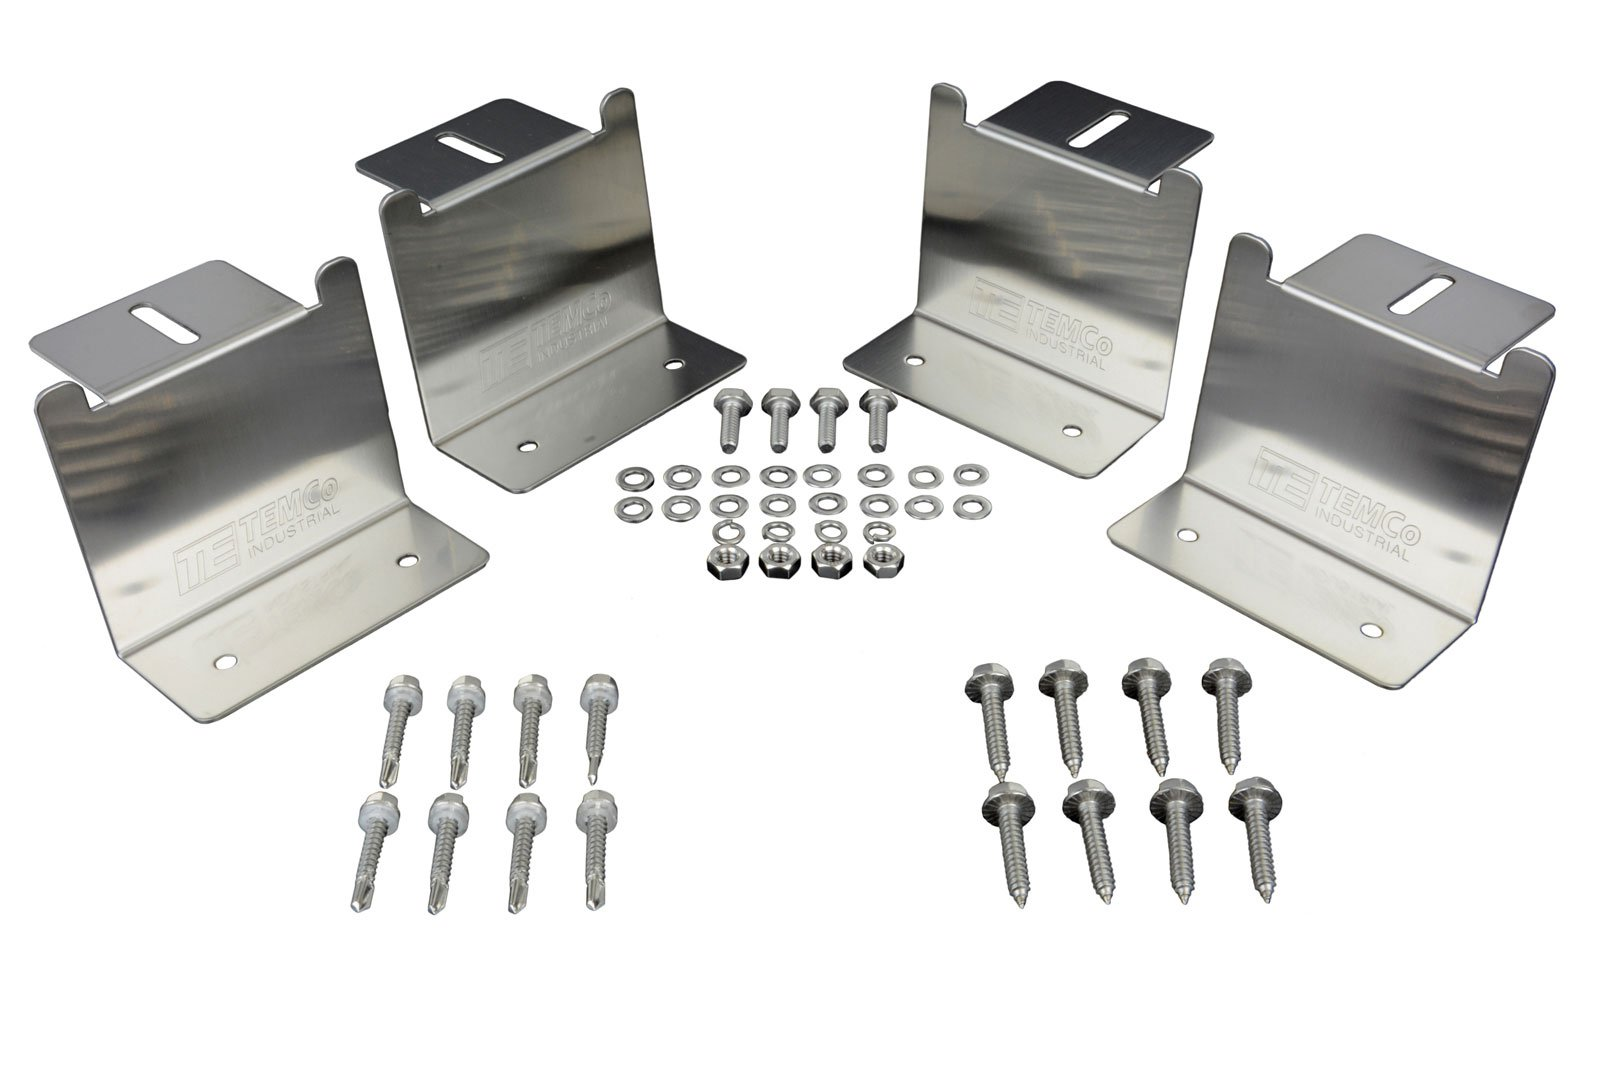 Temco 2 Qty New Solar Panel Mounting Z Bracket Stainless Steel Kit Mount Set Roof RV (with Wood Screws)